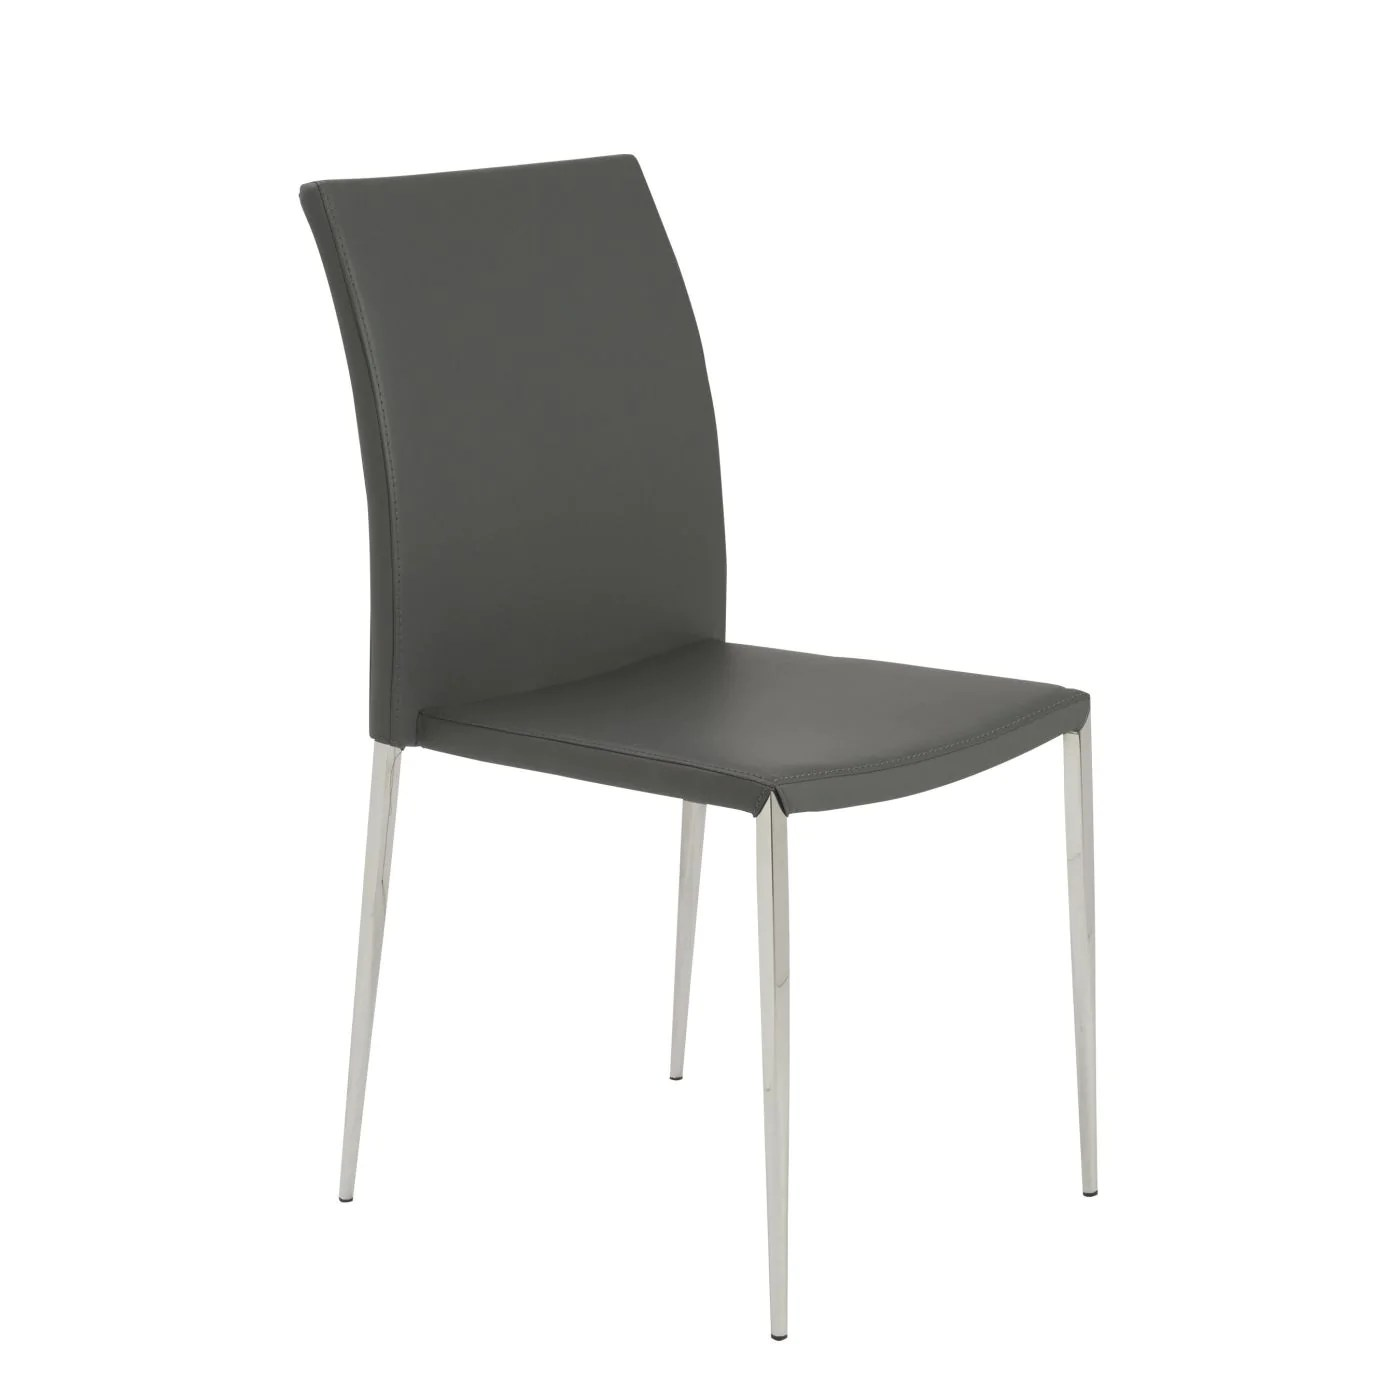 dining chairs with stainless steel legs black lacquer euro style diana stacking side chair in gray polished